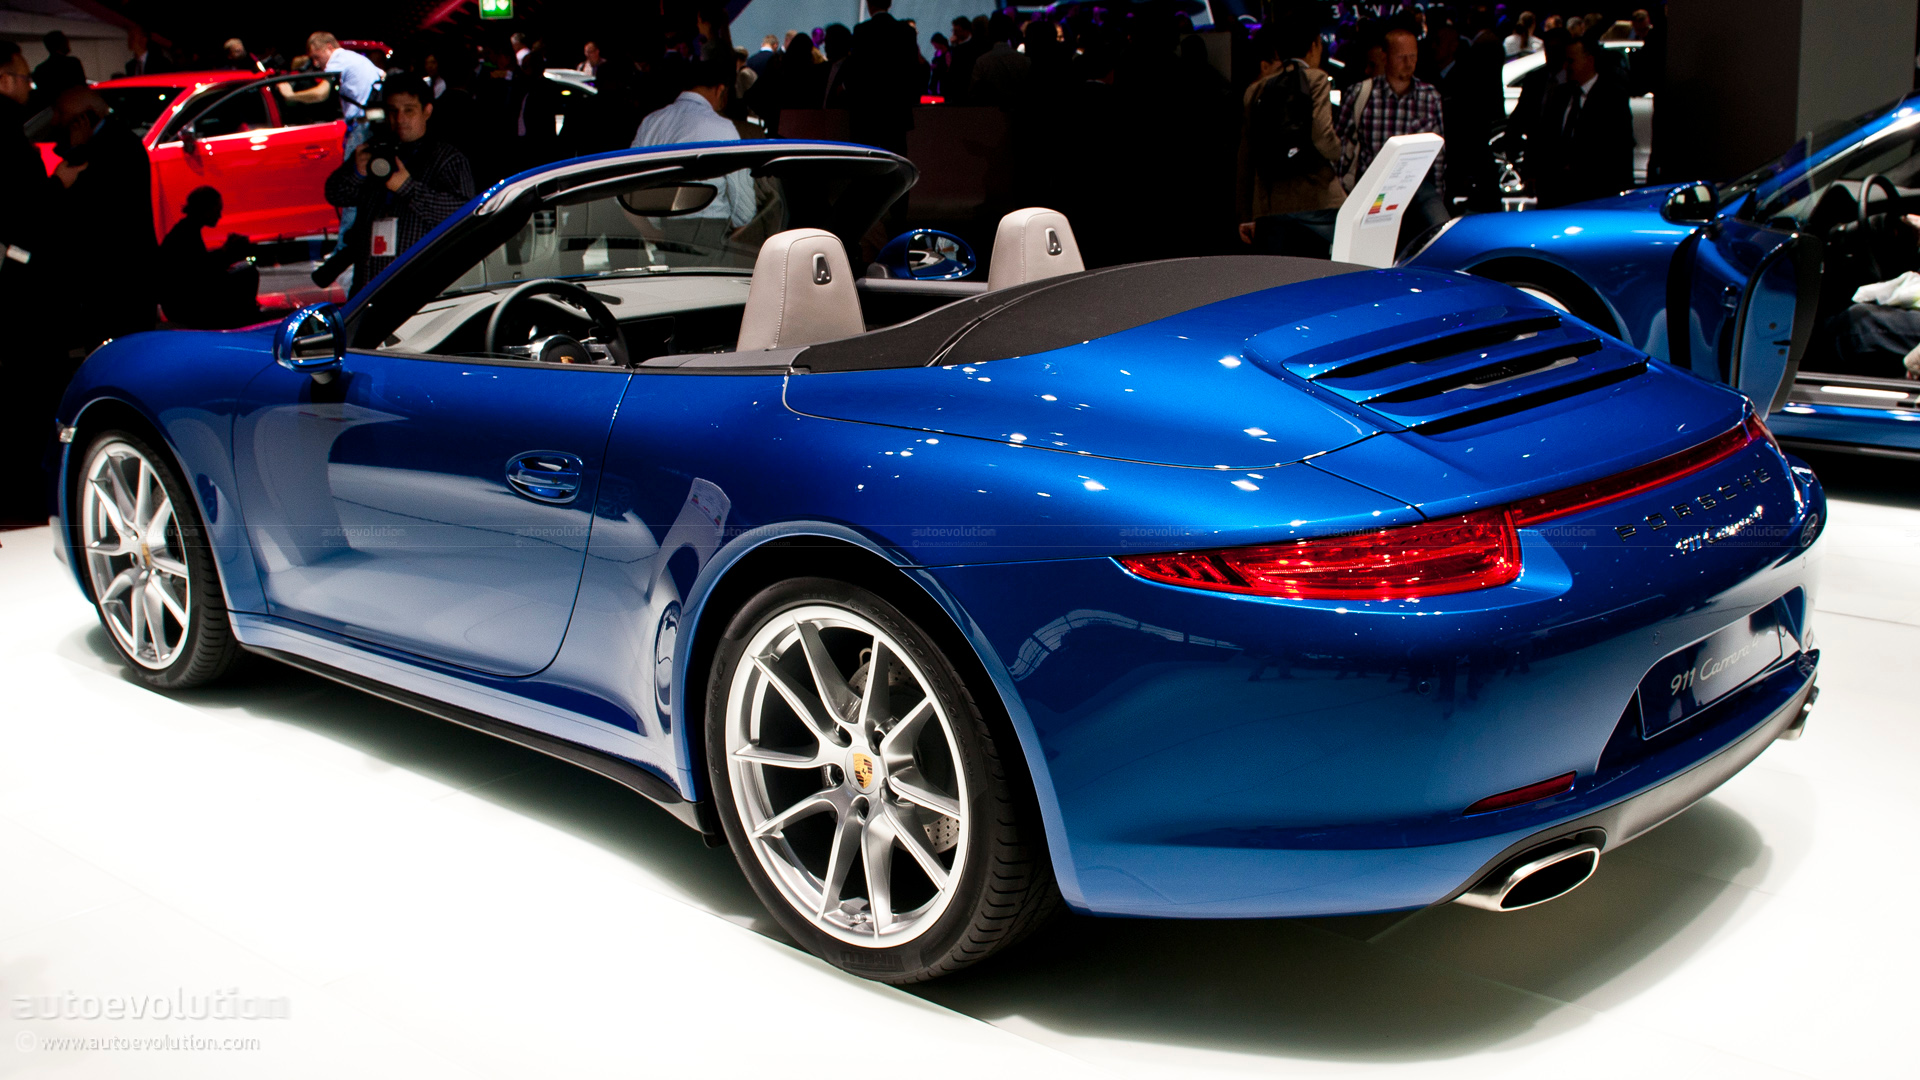 Porsche 911 Carrera 4S Cabriolet photo 11